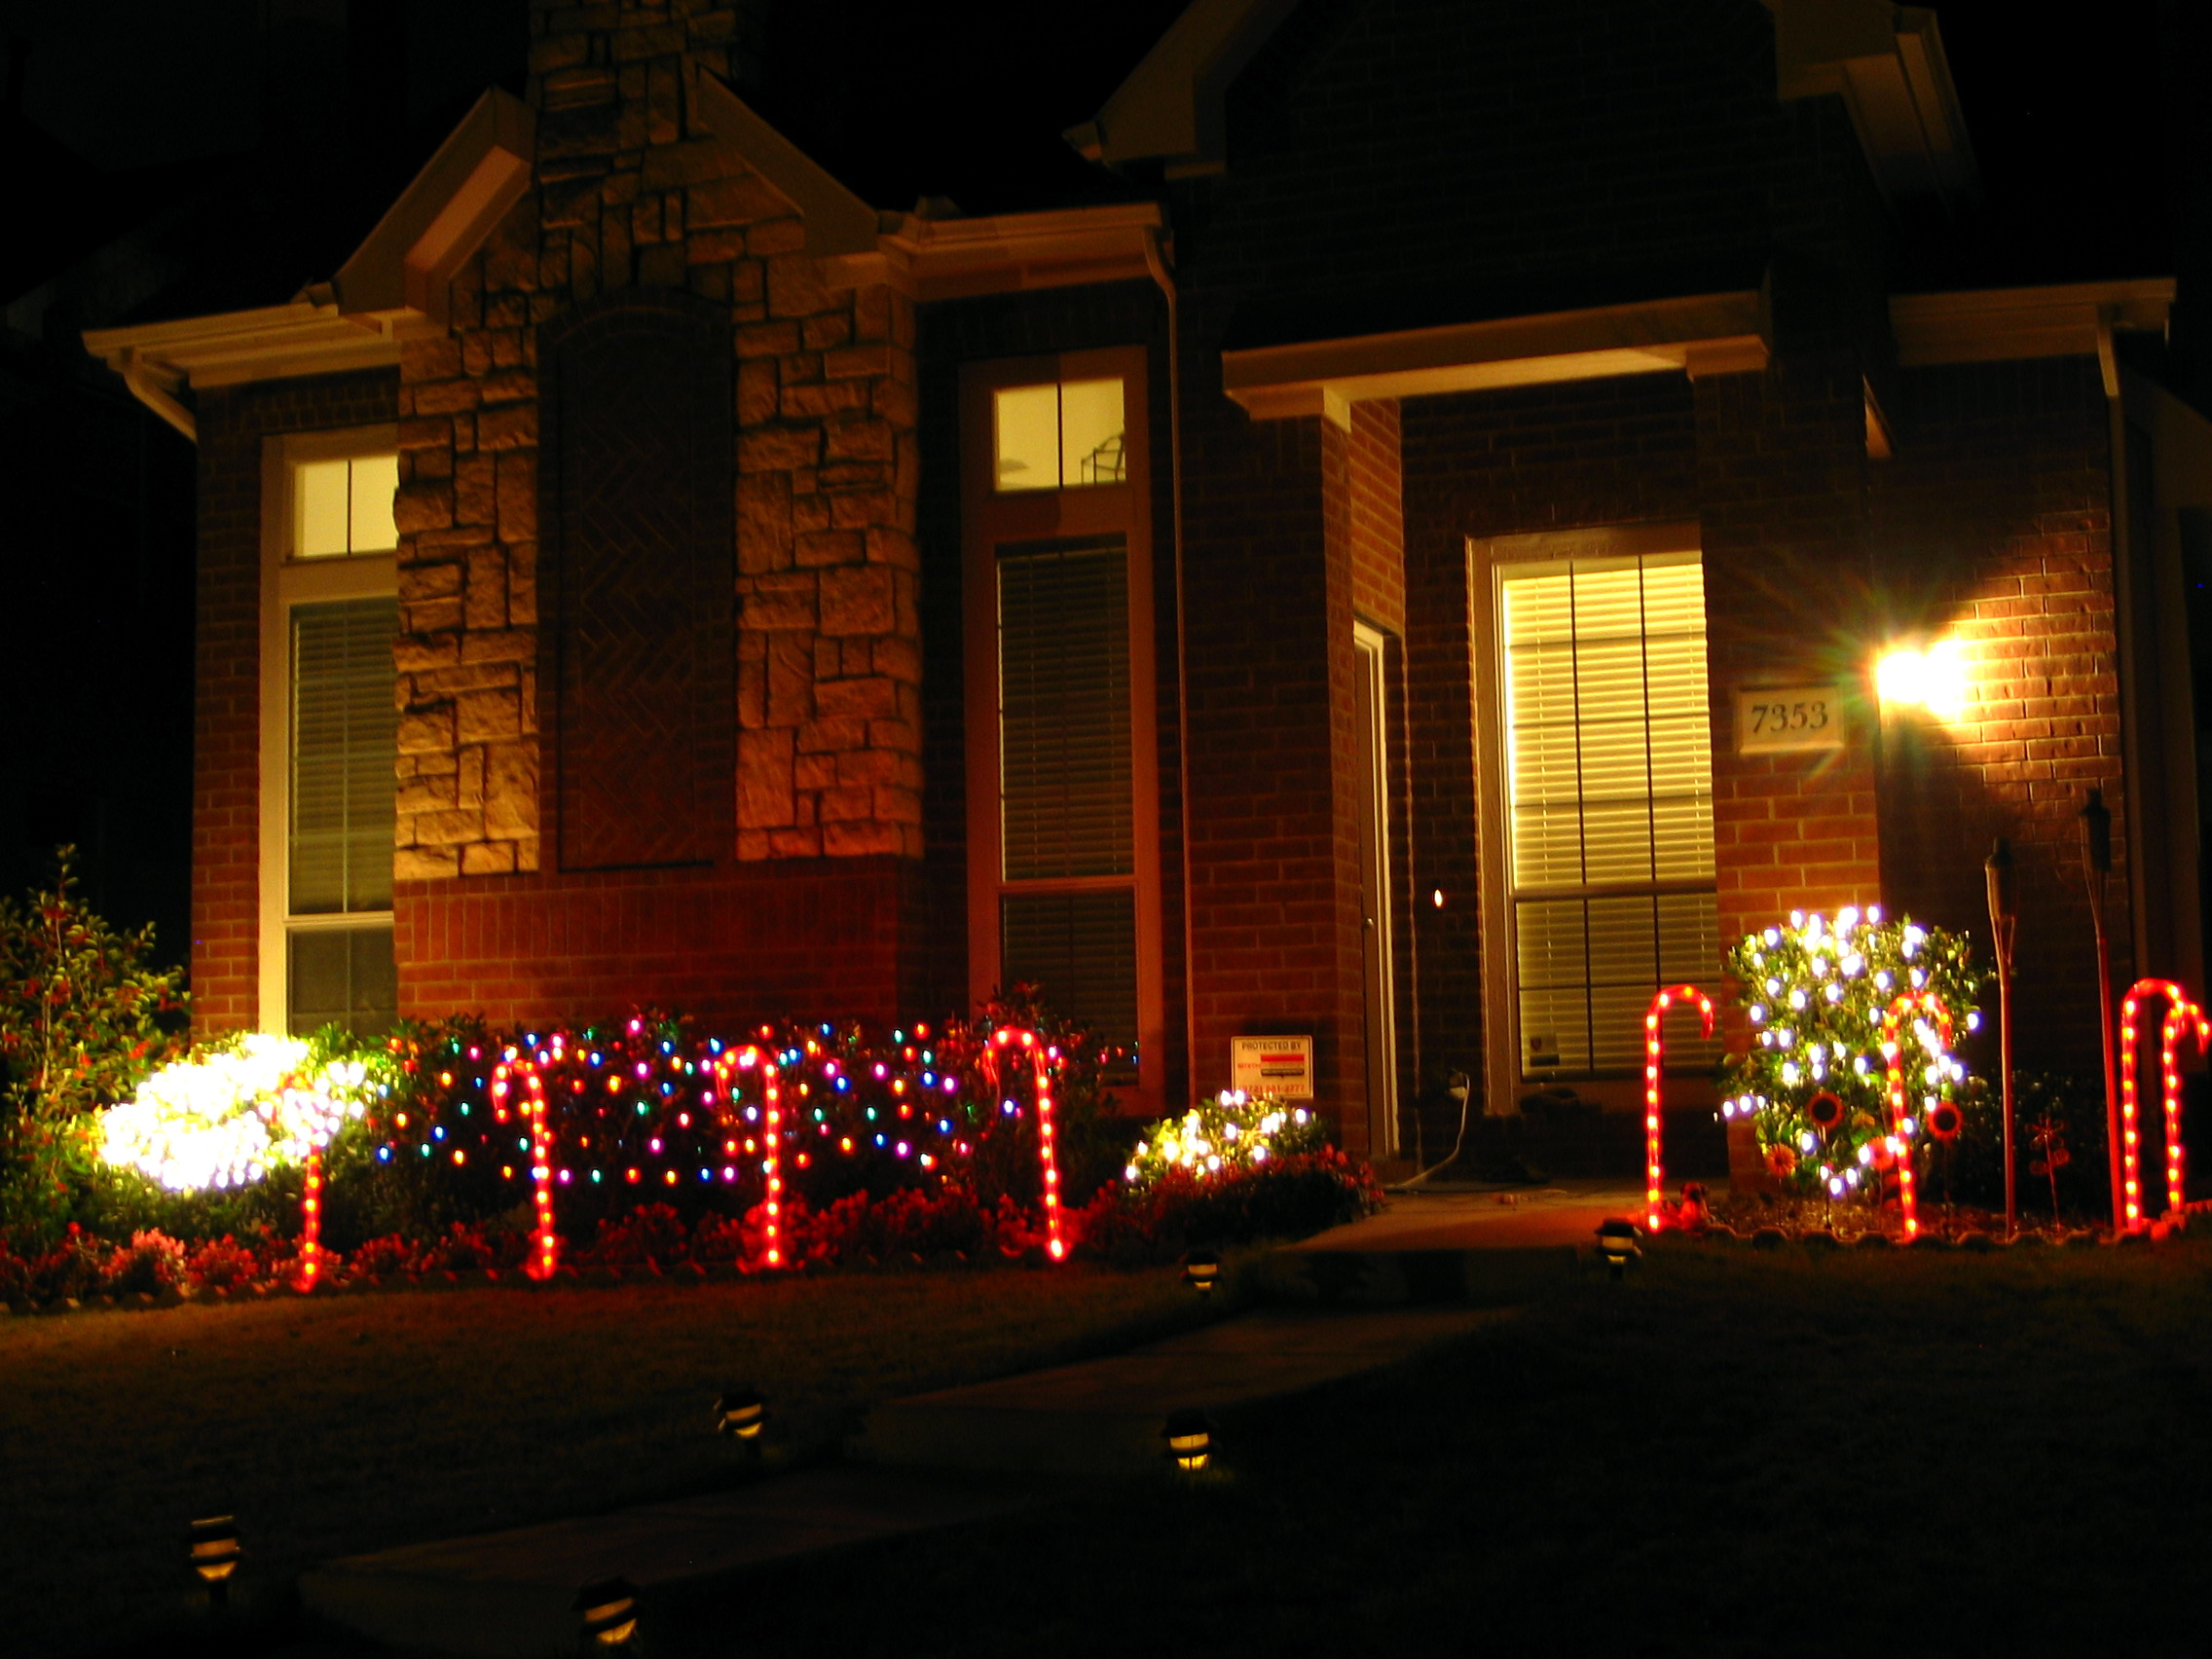 Christmas Decorations For Outside : File christmas decoration outdoors g wikimedia commons